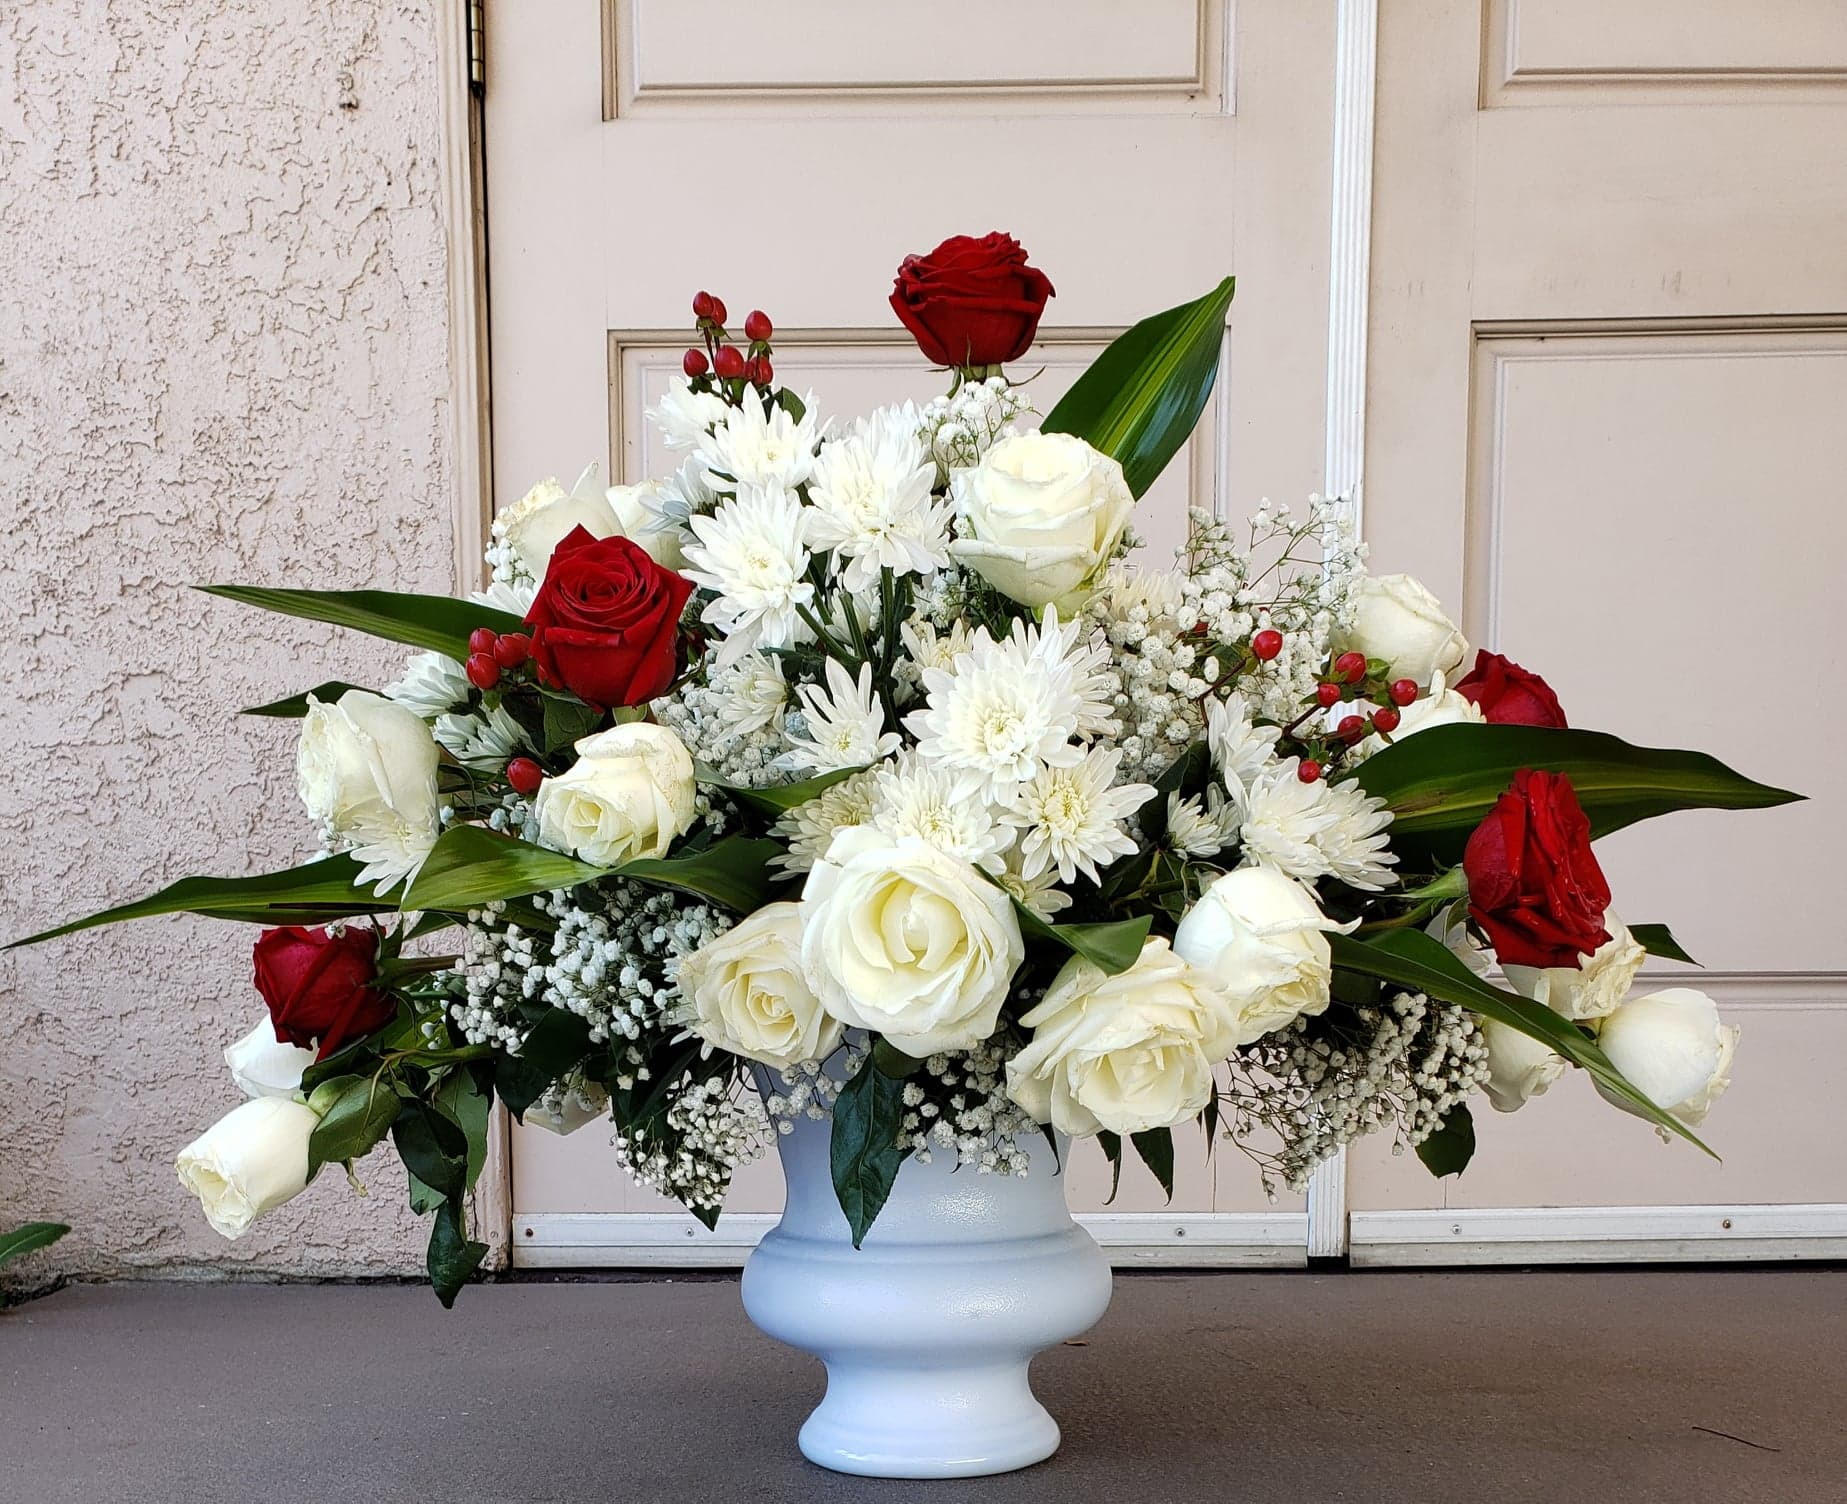 White and Red Funeral Urn